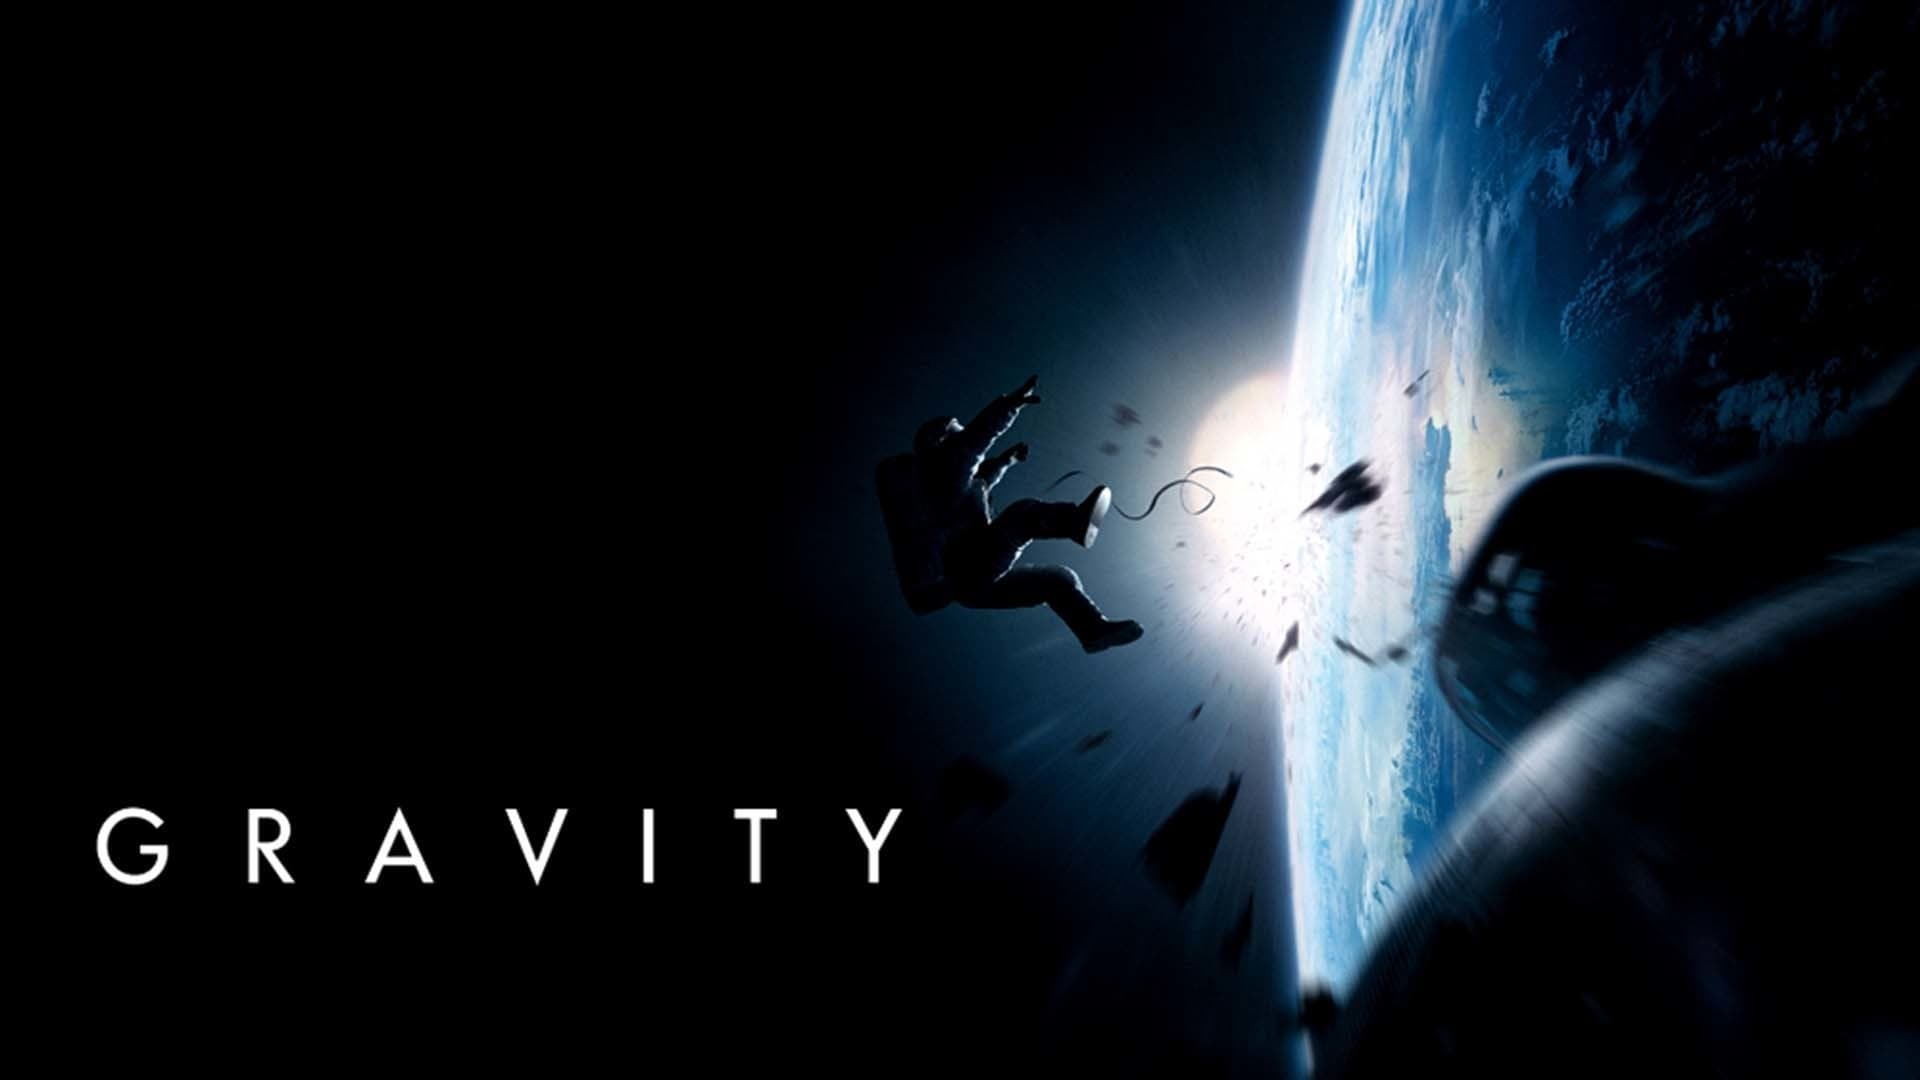 Free Watch Gravity 2013 Movies Without Downloading